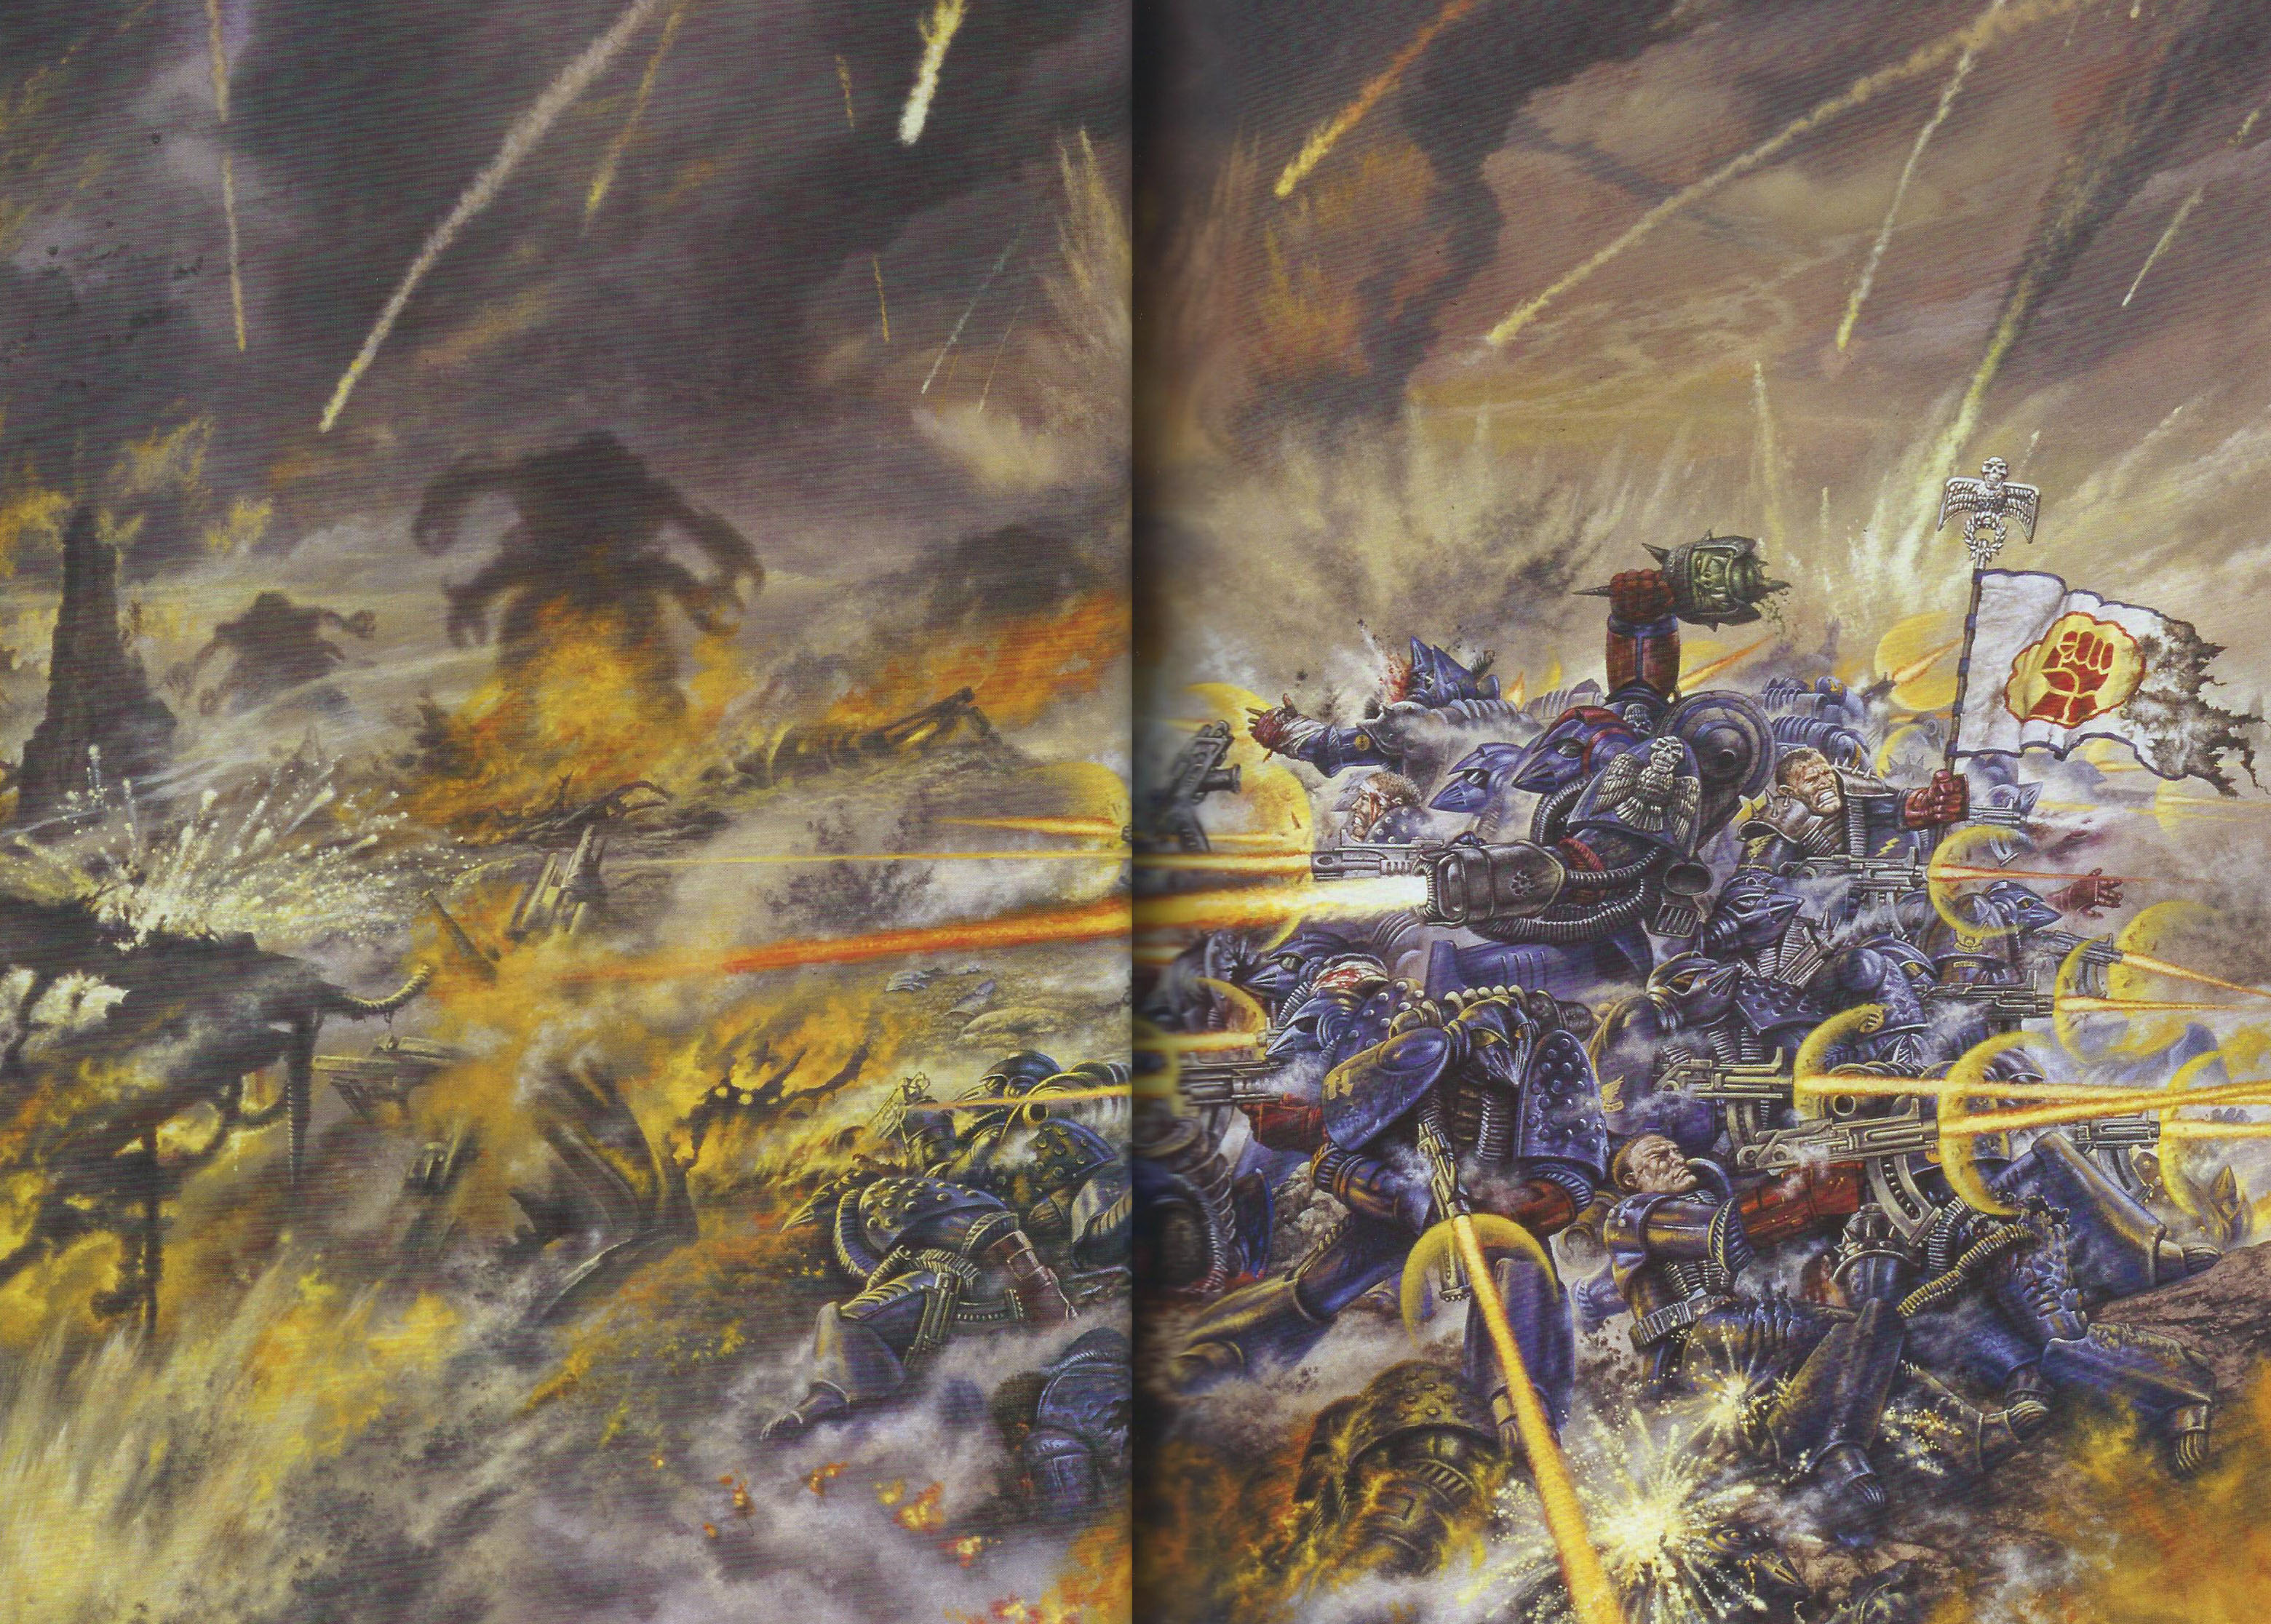 Warhammer 40k The Emperor's Might Art Book 2